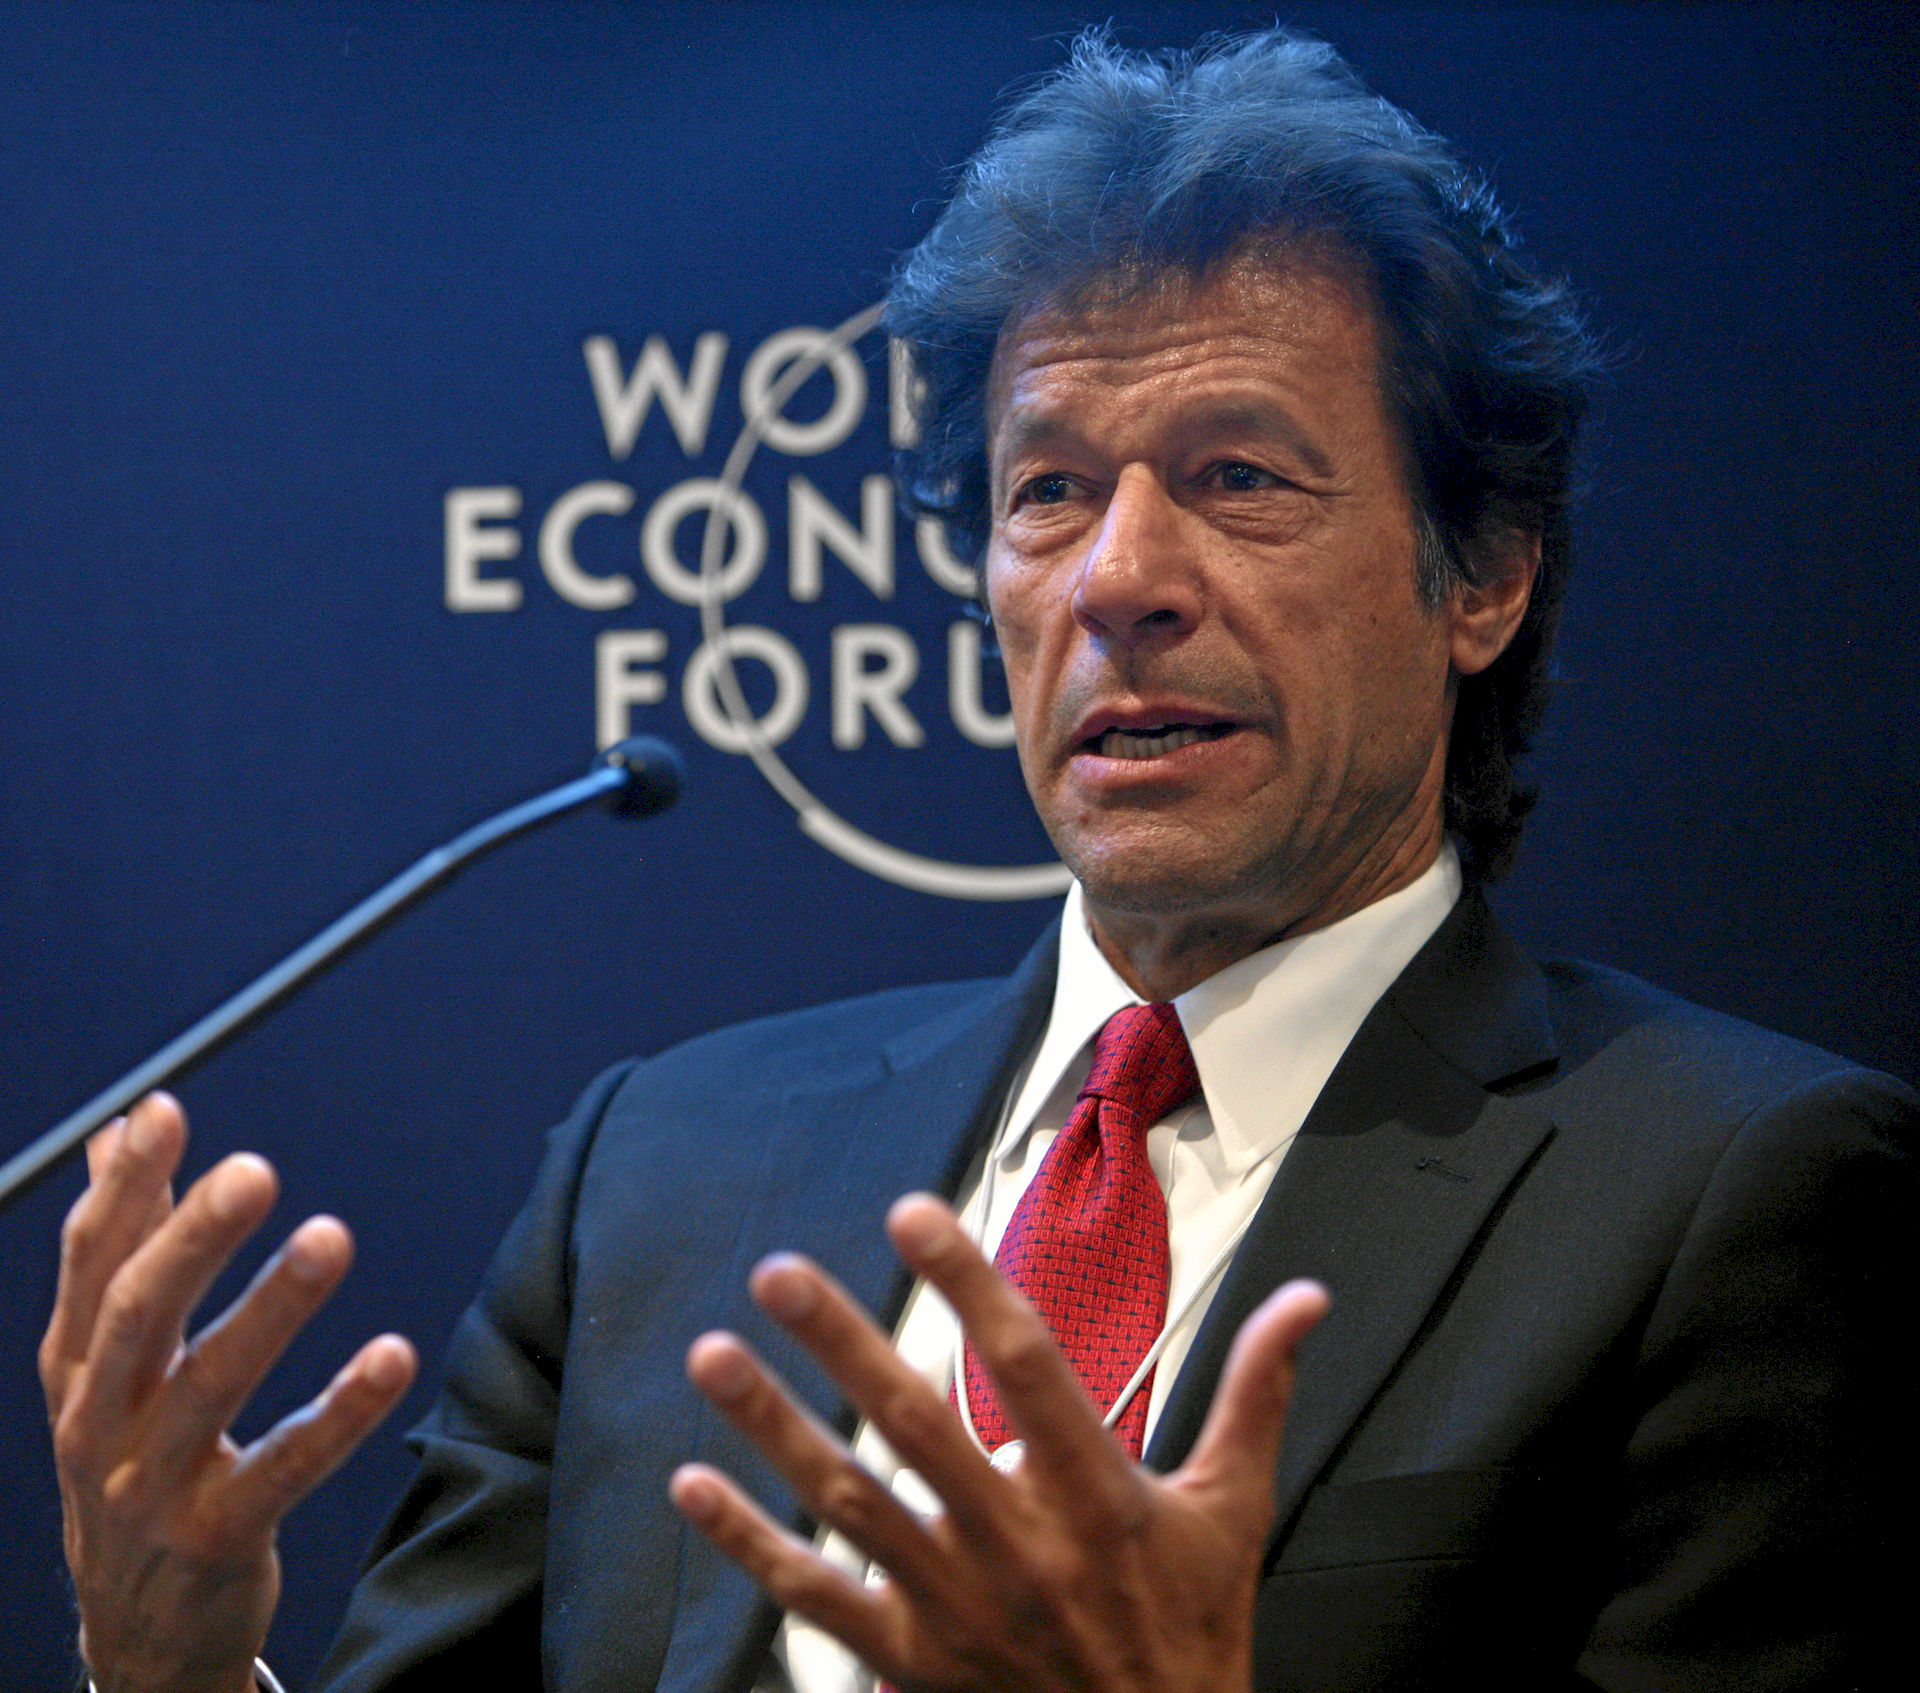 Photo of Imran Khan: Politician and former cricketer